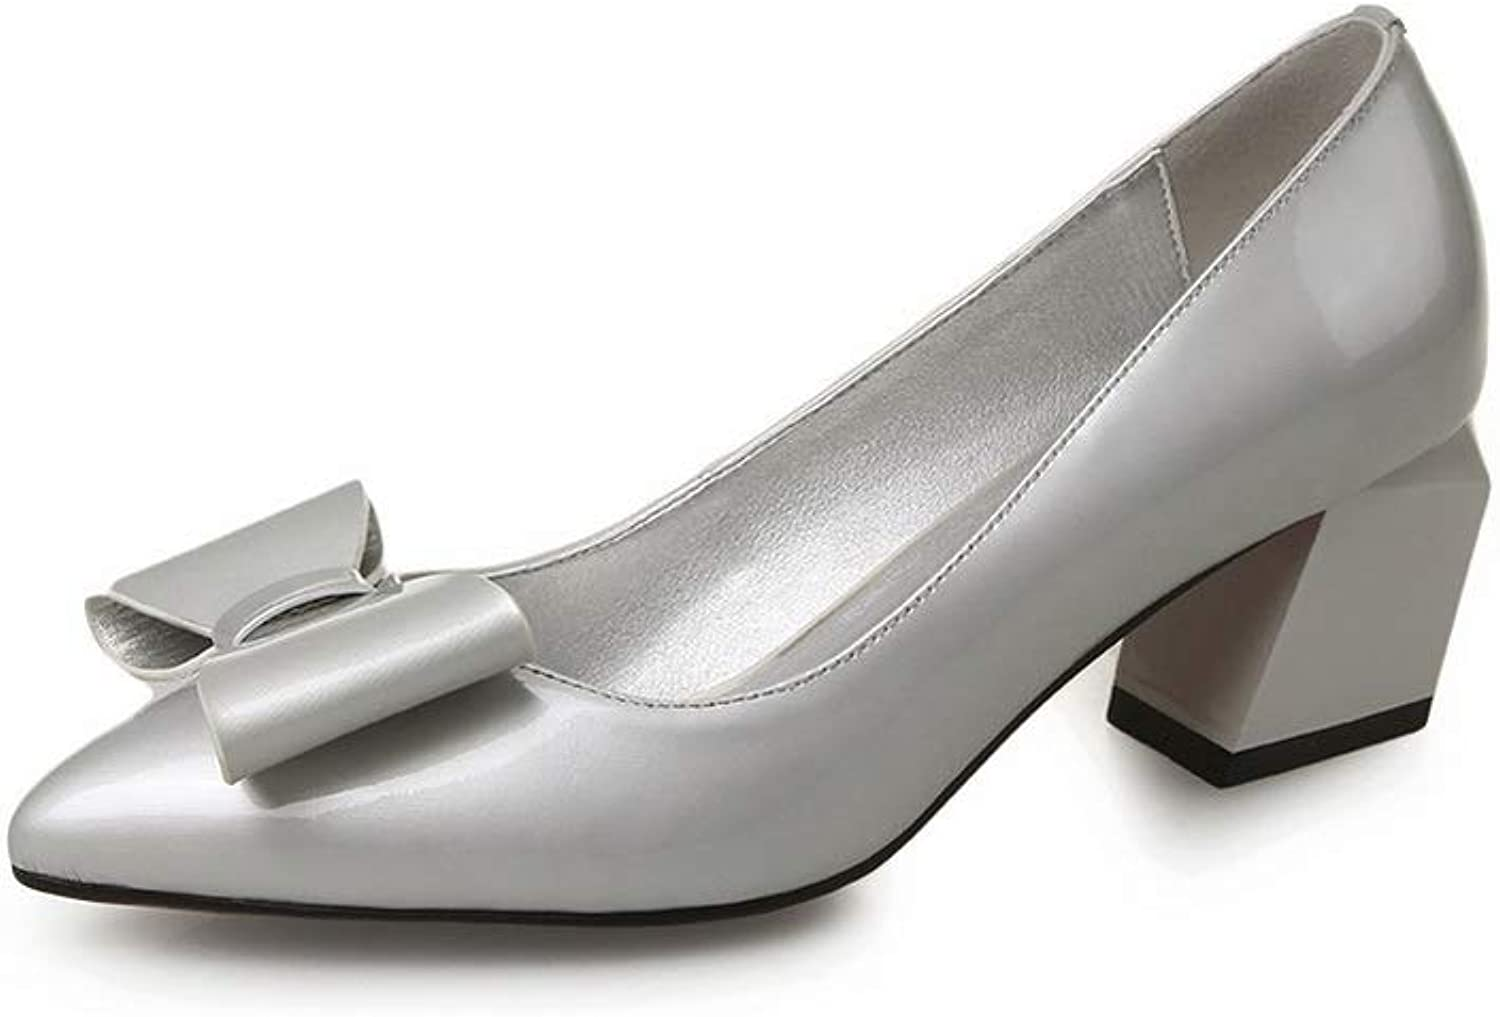 AdeeSu Womens Bows Business Solid Urethane Pumps shoes SDC06292